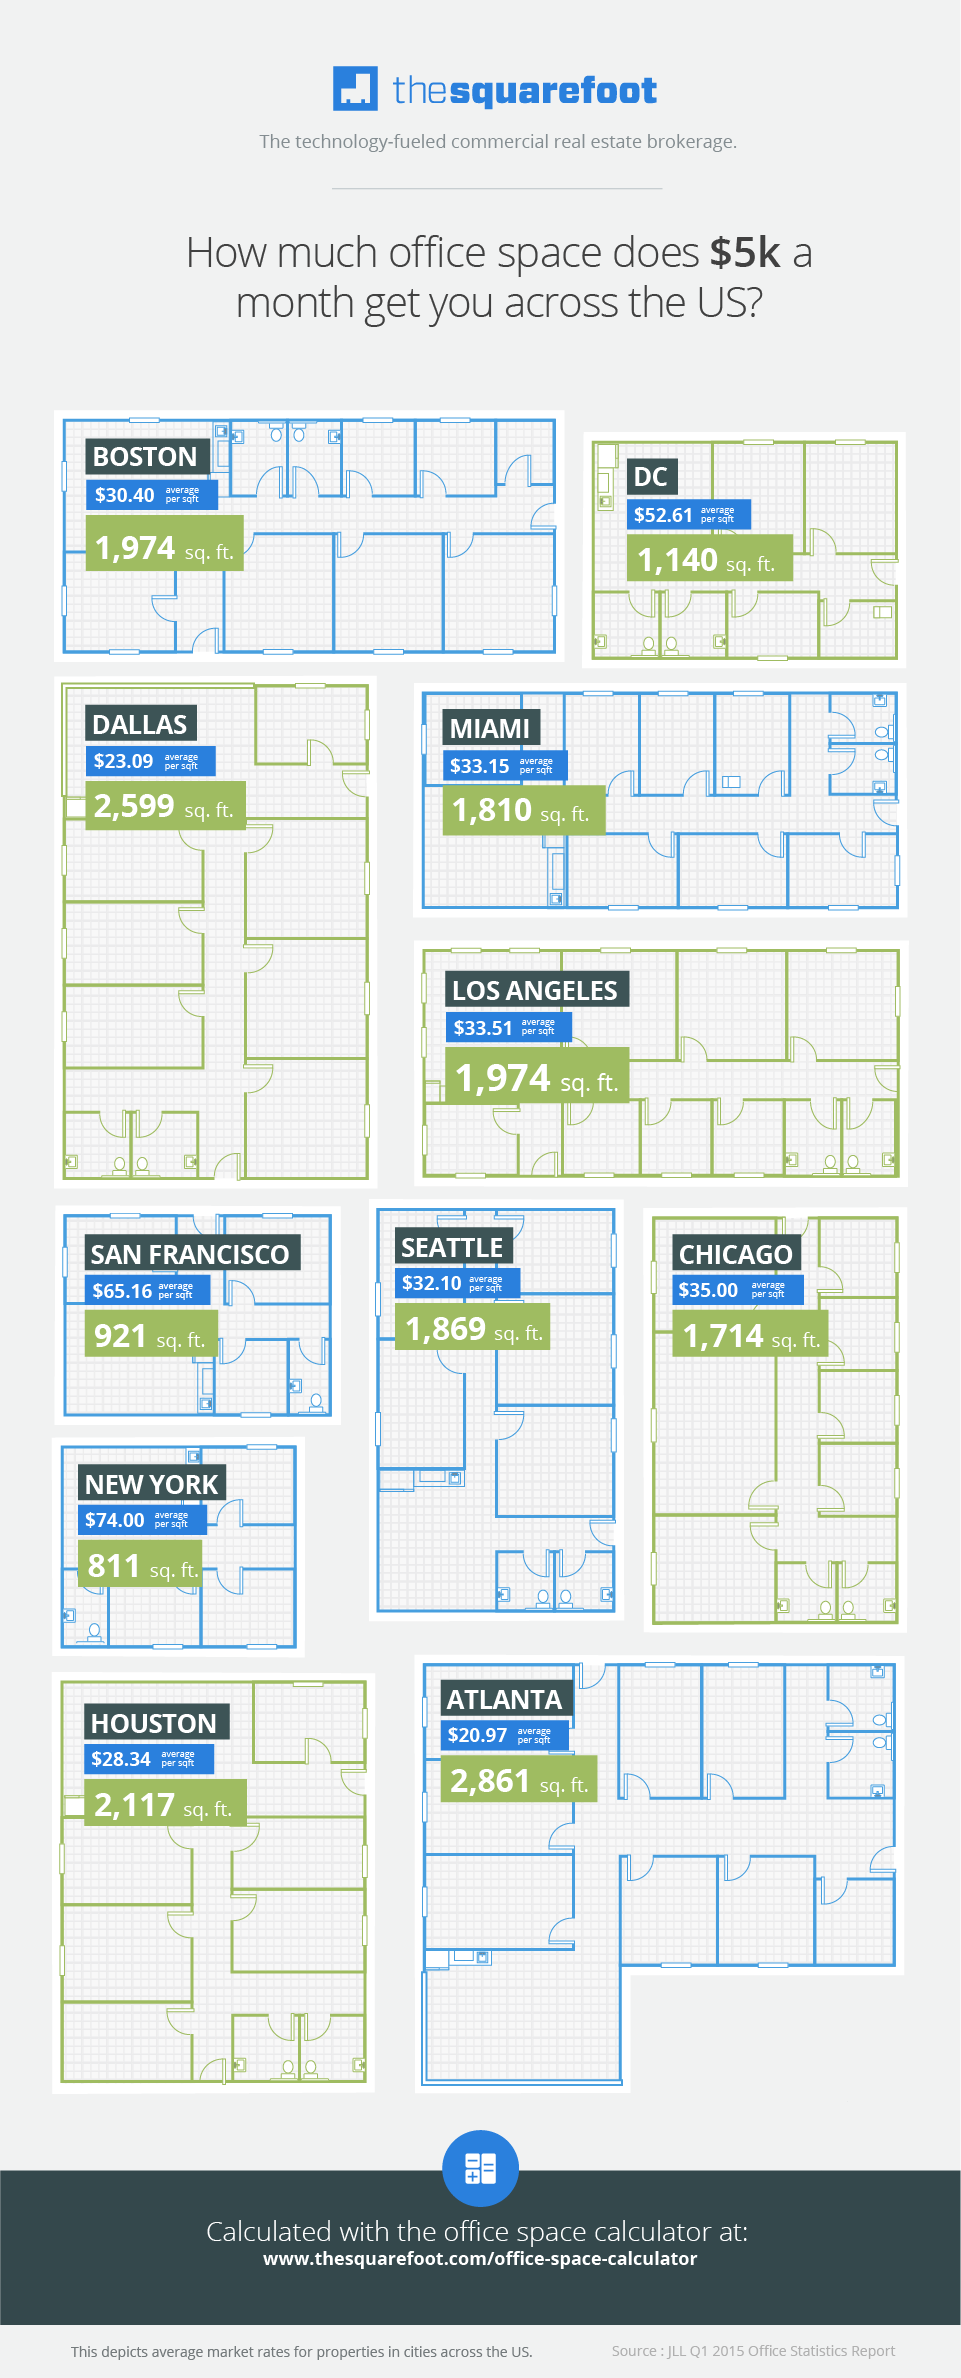 How Much Does It Cost to Rent an Office in Your City? (Infographic)